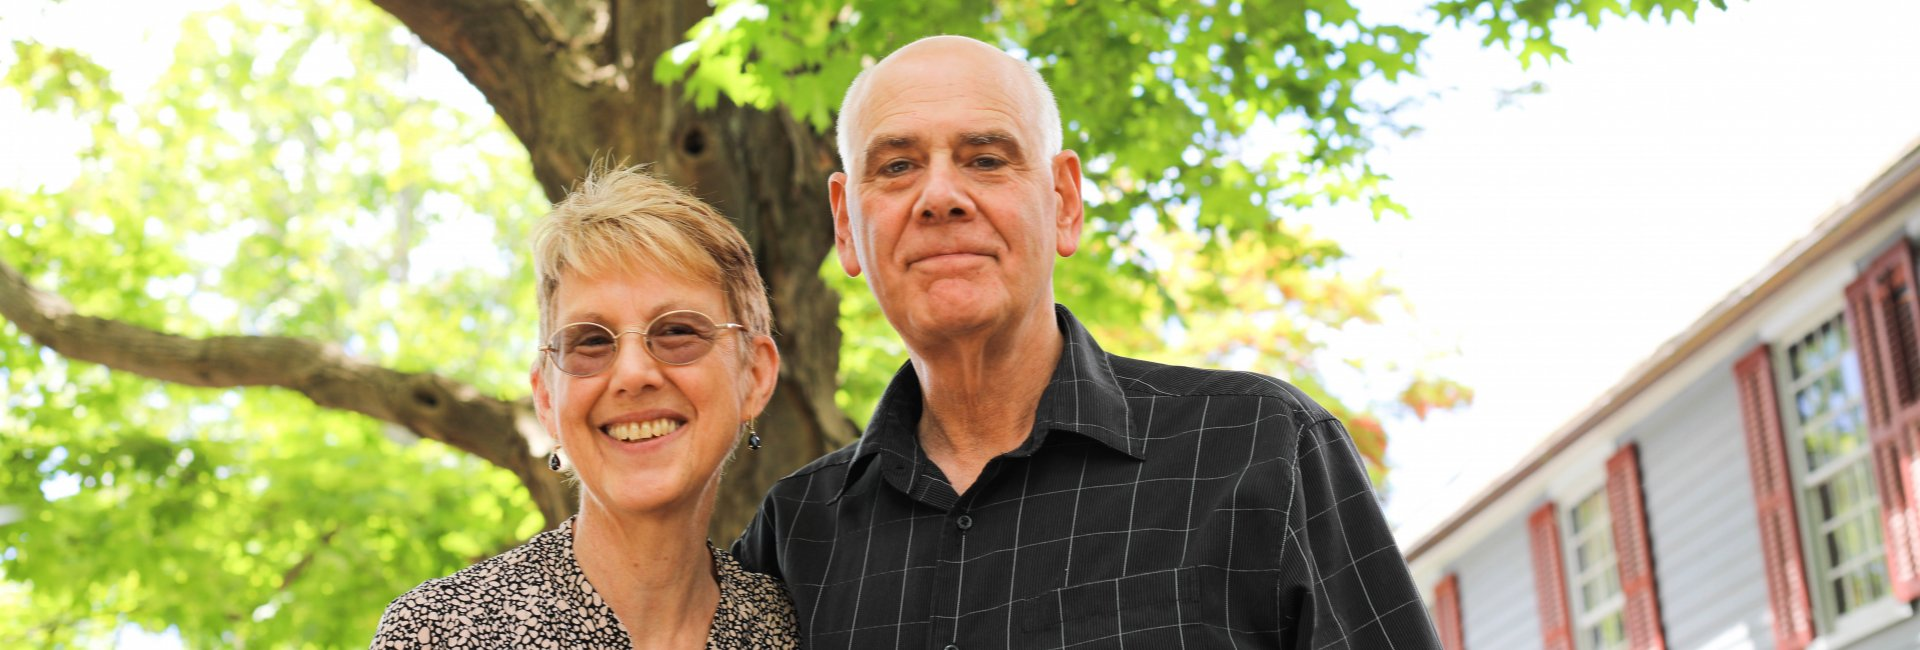 """UMass has always been part of the love story of Hilary Ratner '76MS, '79PhD and Stuart """"Stu"""" Ratner '81PhD"""